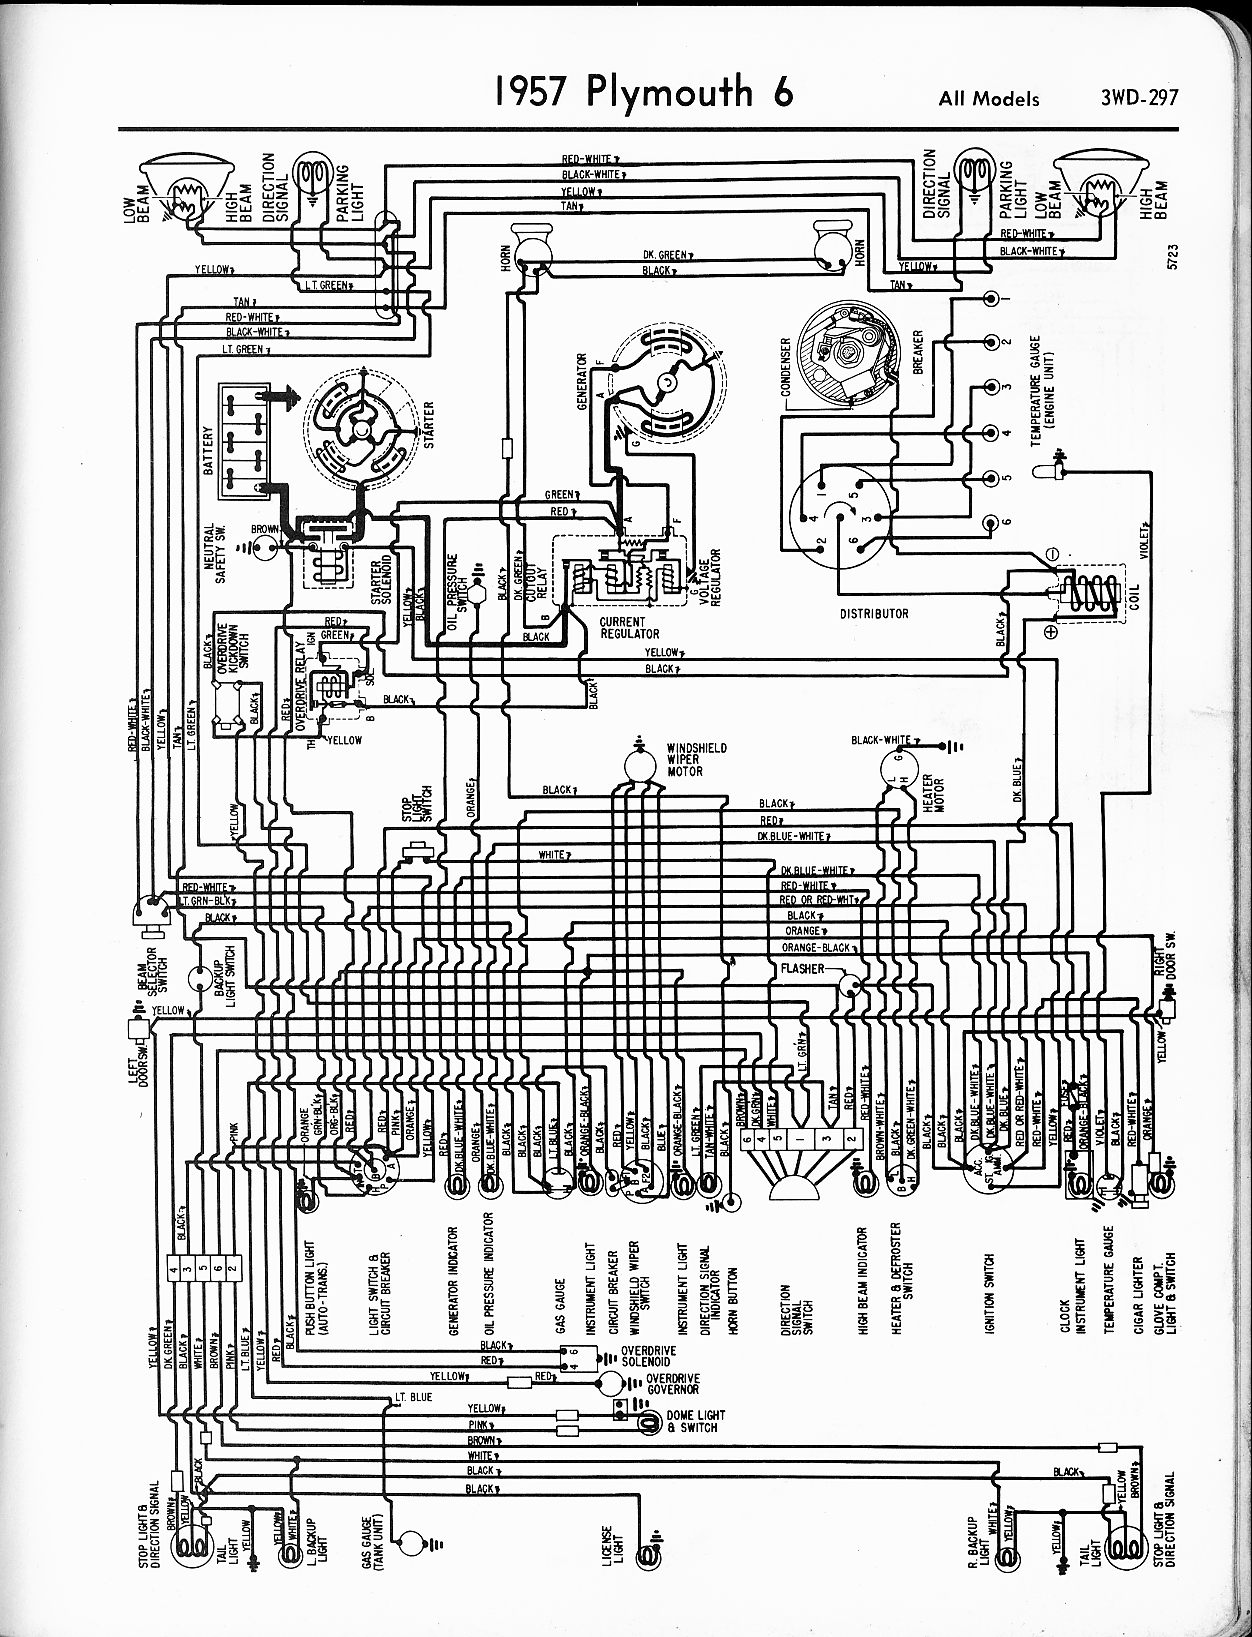 1965 barracuda wiring diagram wiring diagrams click 1974 Challenger 1965 ply barracuda wiring diagram electrical schematic wiring 1965 barracuda in blue 1956 1965 plymouth wiring